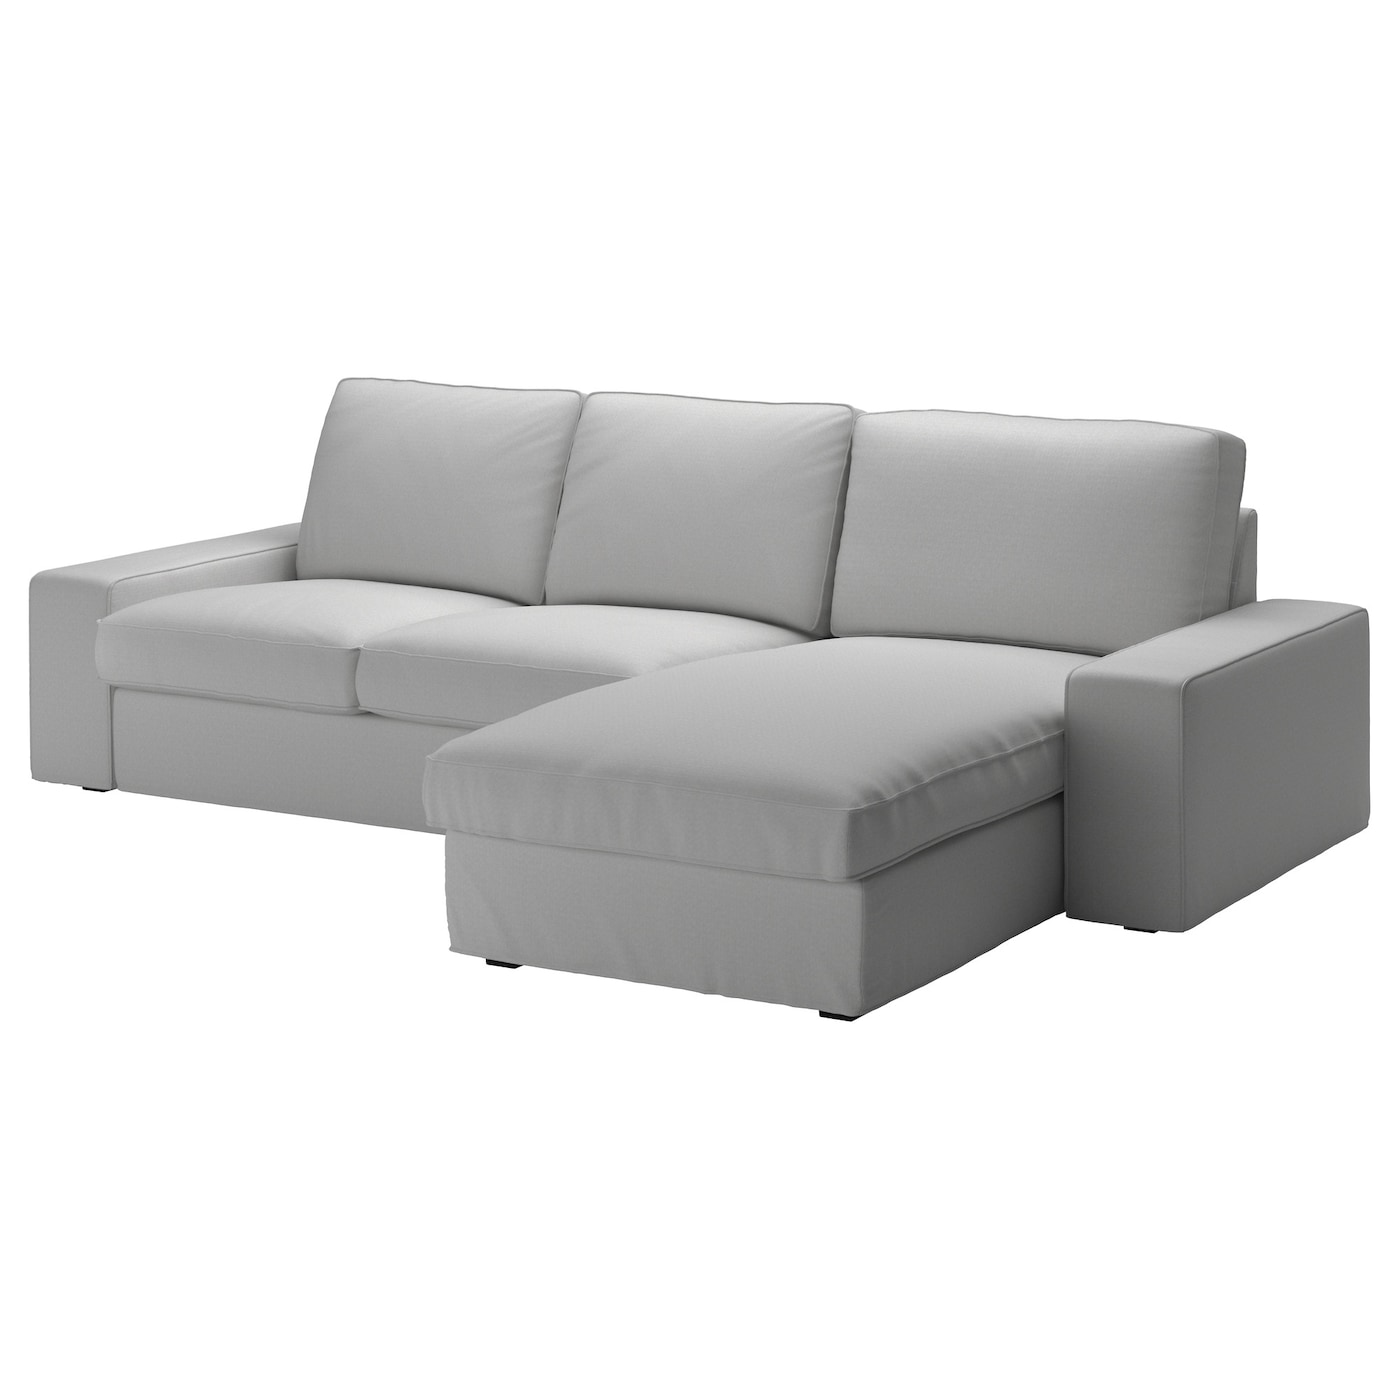 Kivik 3 Seat Sofa Orrsta With Chaise Longue Orrsta Light Grey